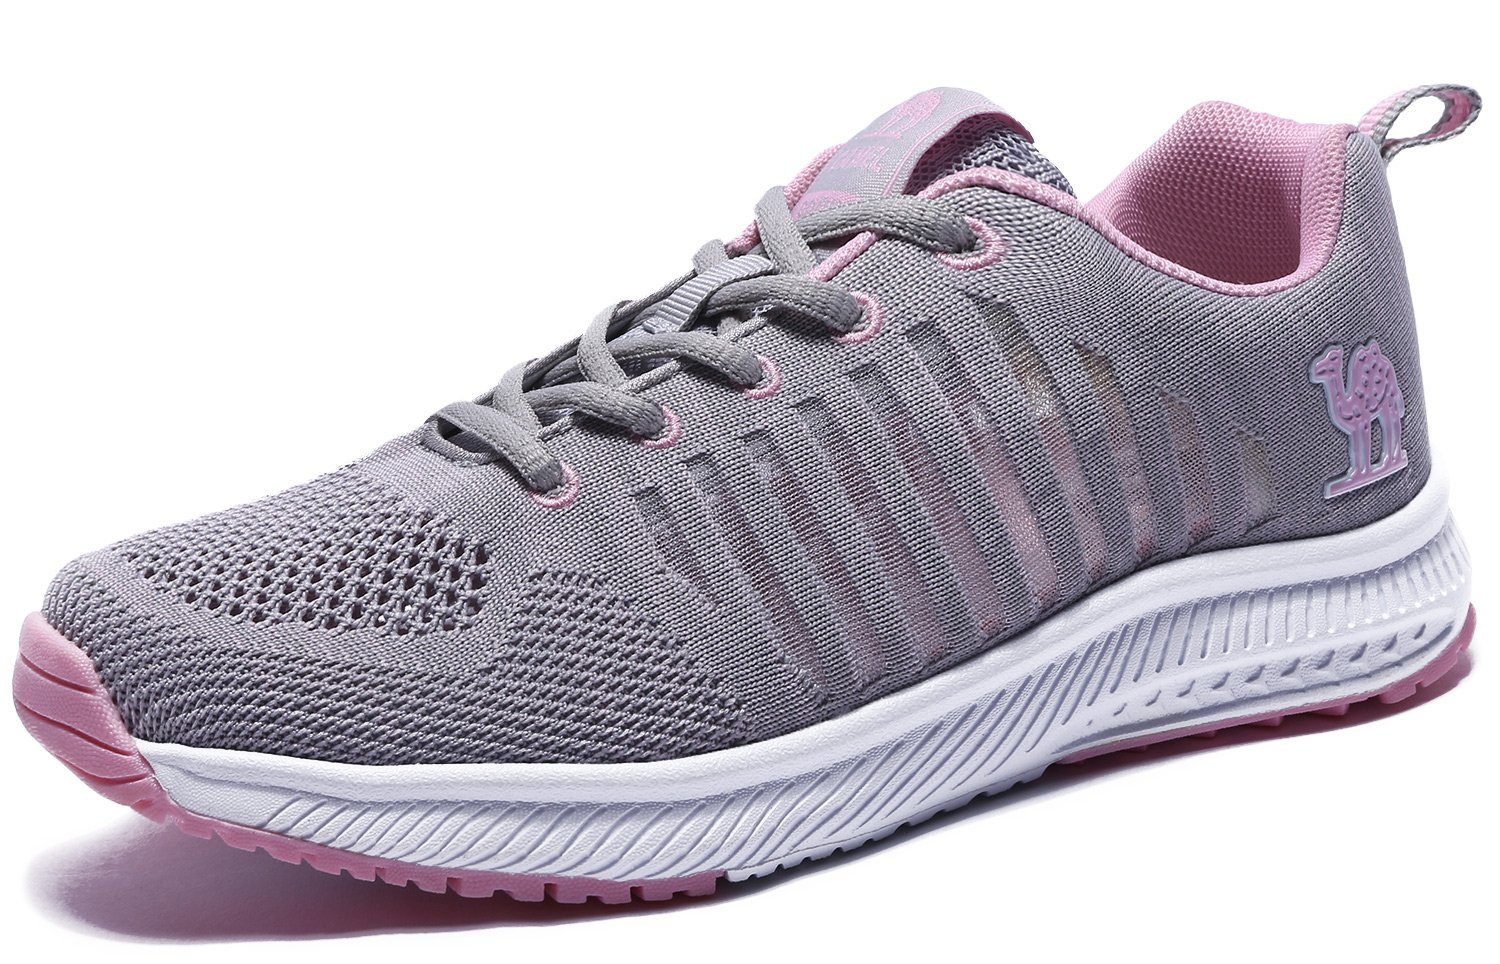 Camel Womens Running Shoes Breathable Athletic Mesh Non-Slip Fashion Lightweight Walking Shoes Sports Sneakers, Gray, 8 B(M) US